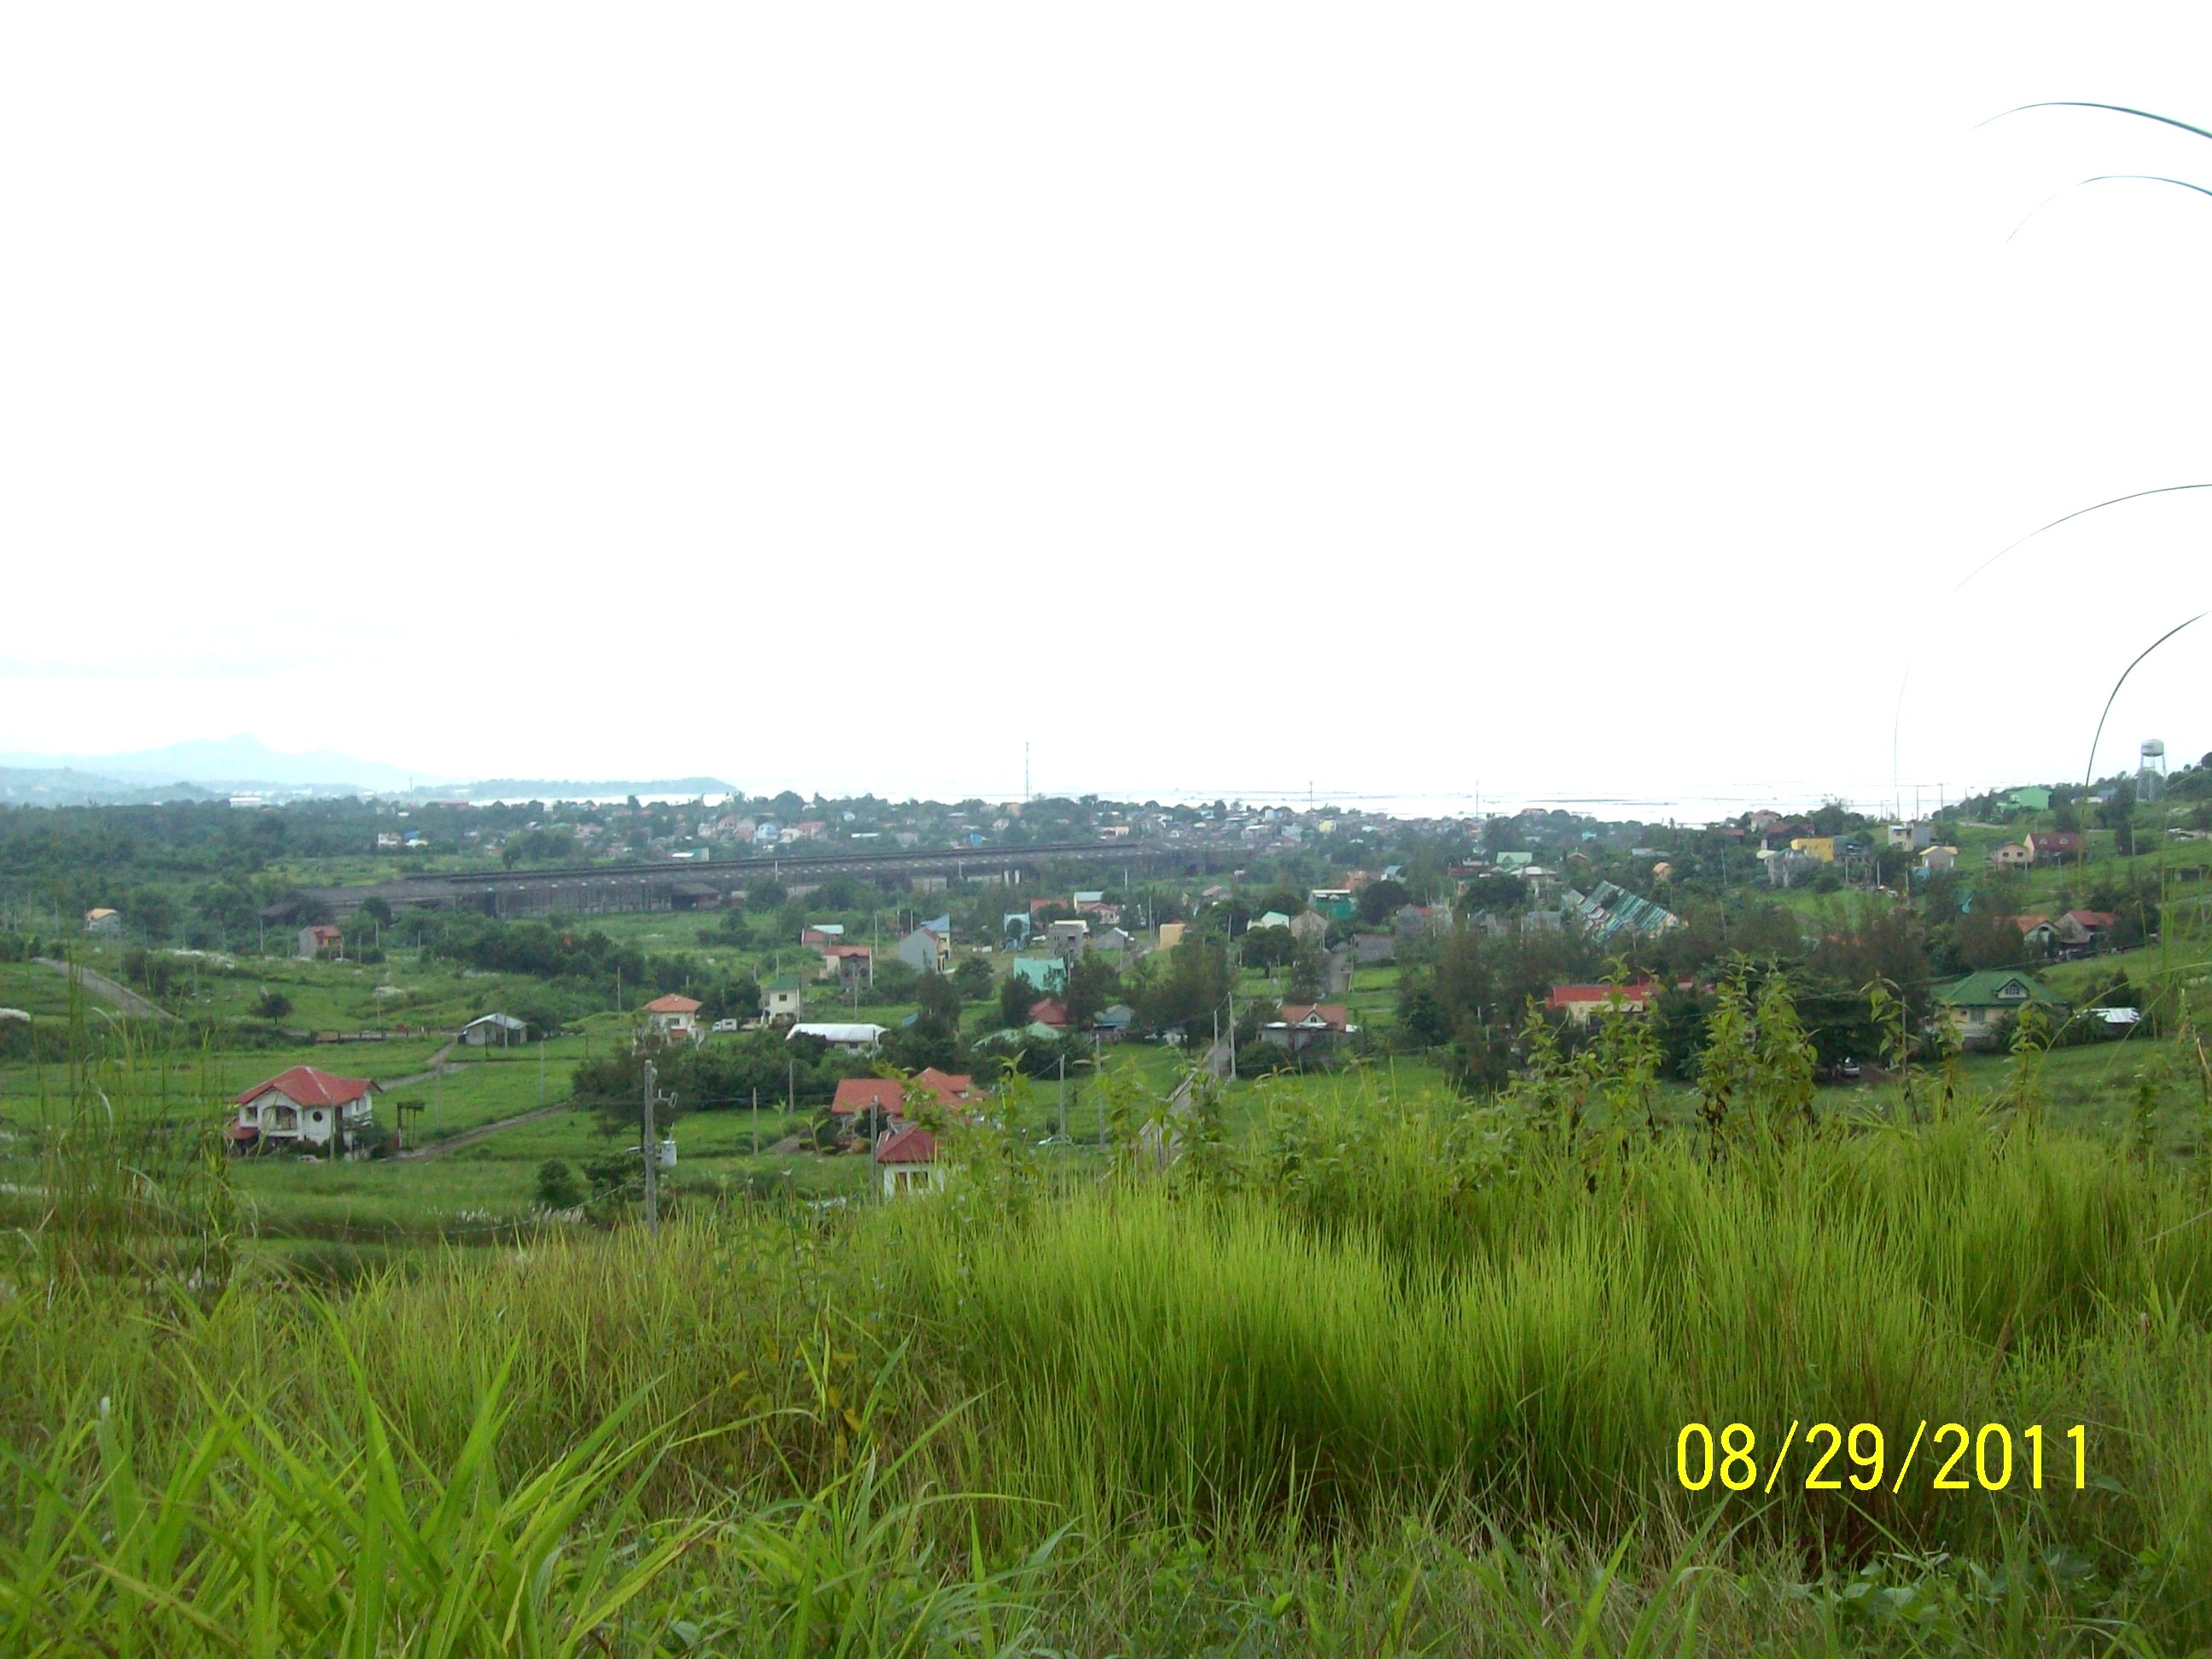 FOR SALE: Lot / Land / Farm Rizal > Other areas 12